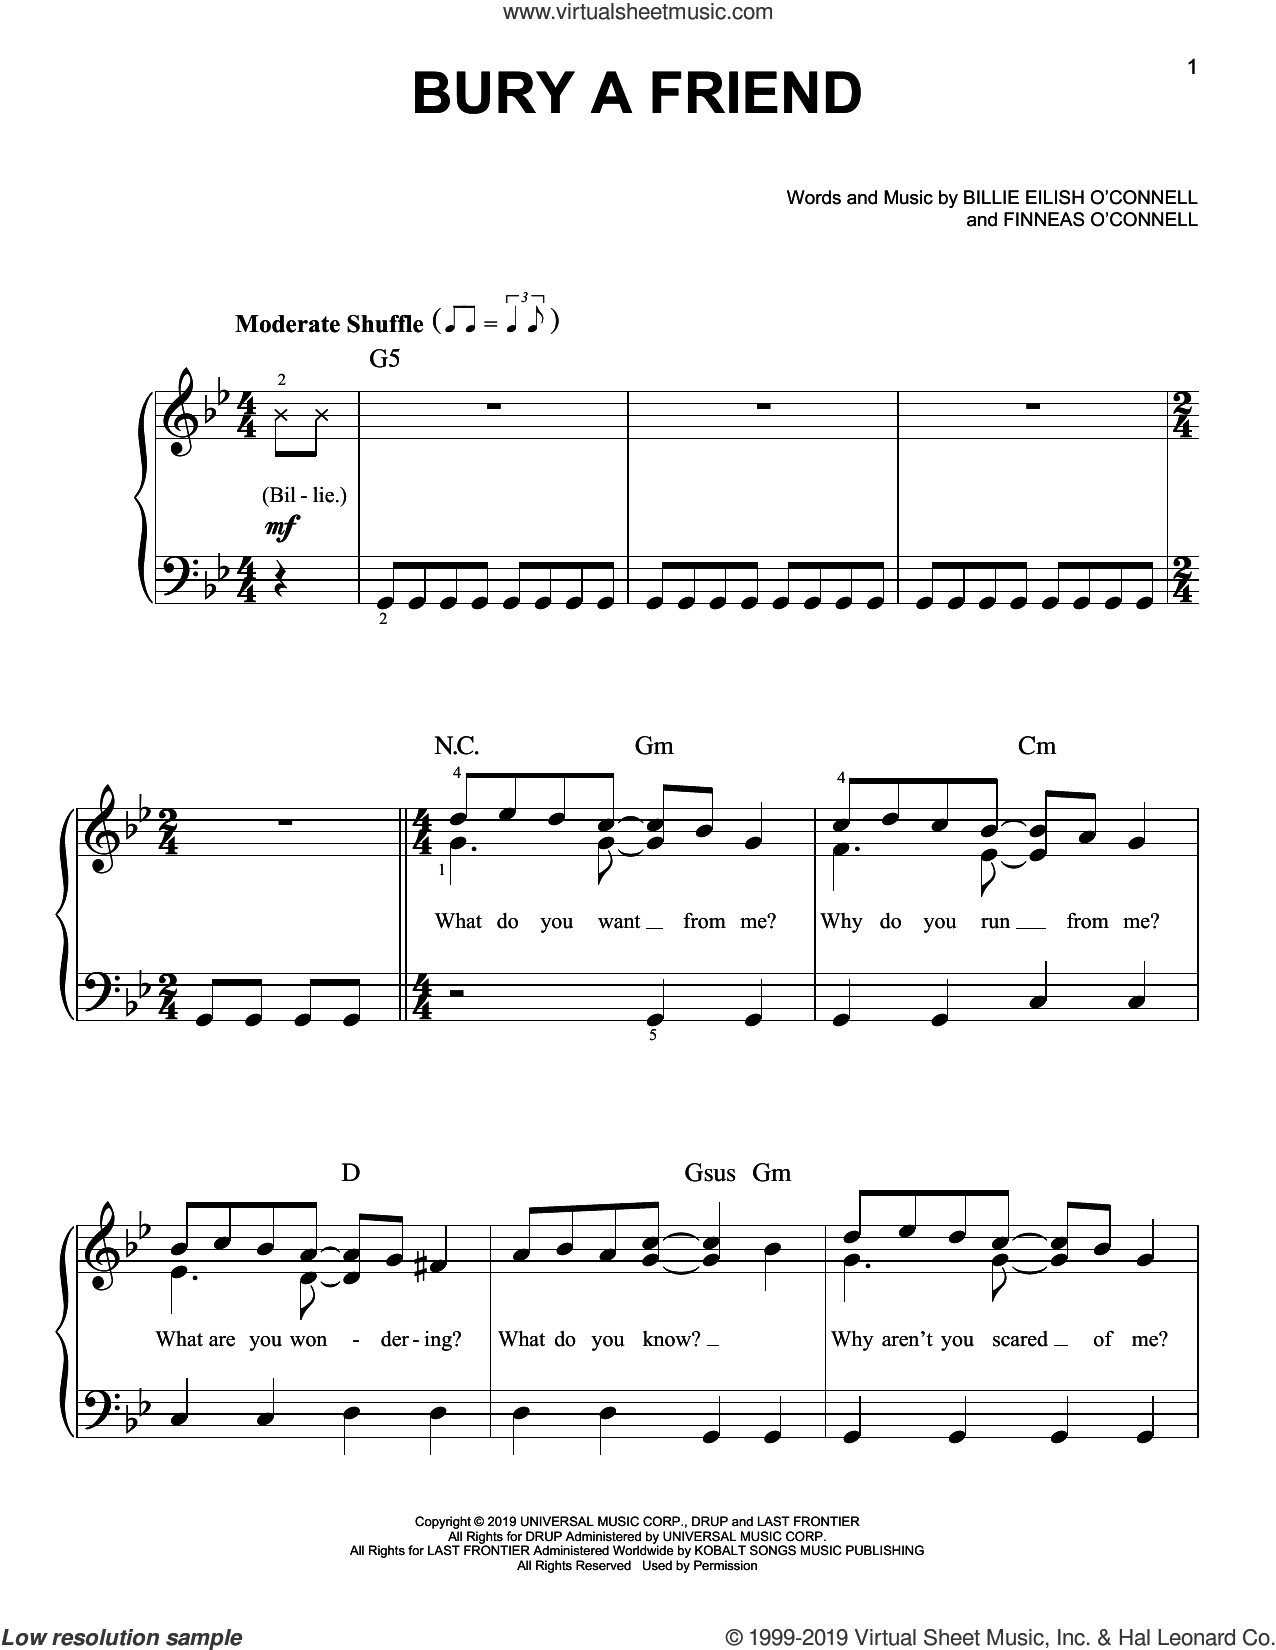 bury a friend sheet music for piano solo by Billie Eilish, easy skill level